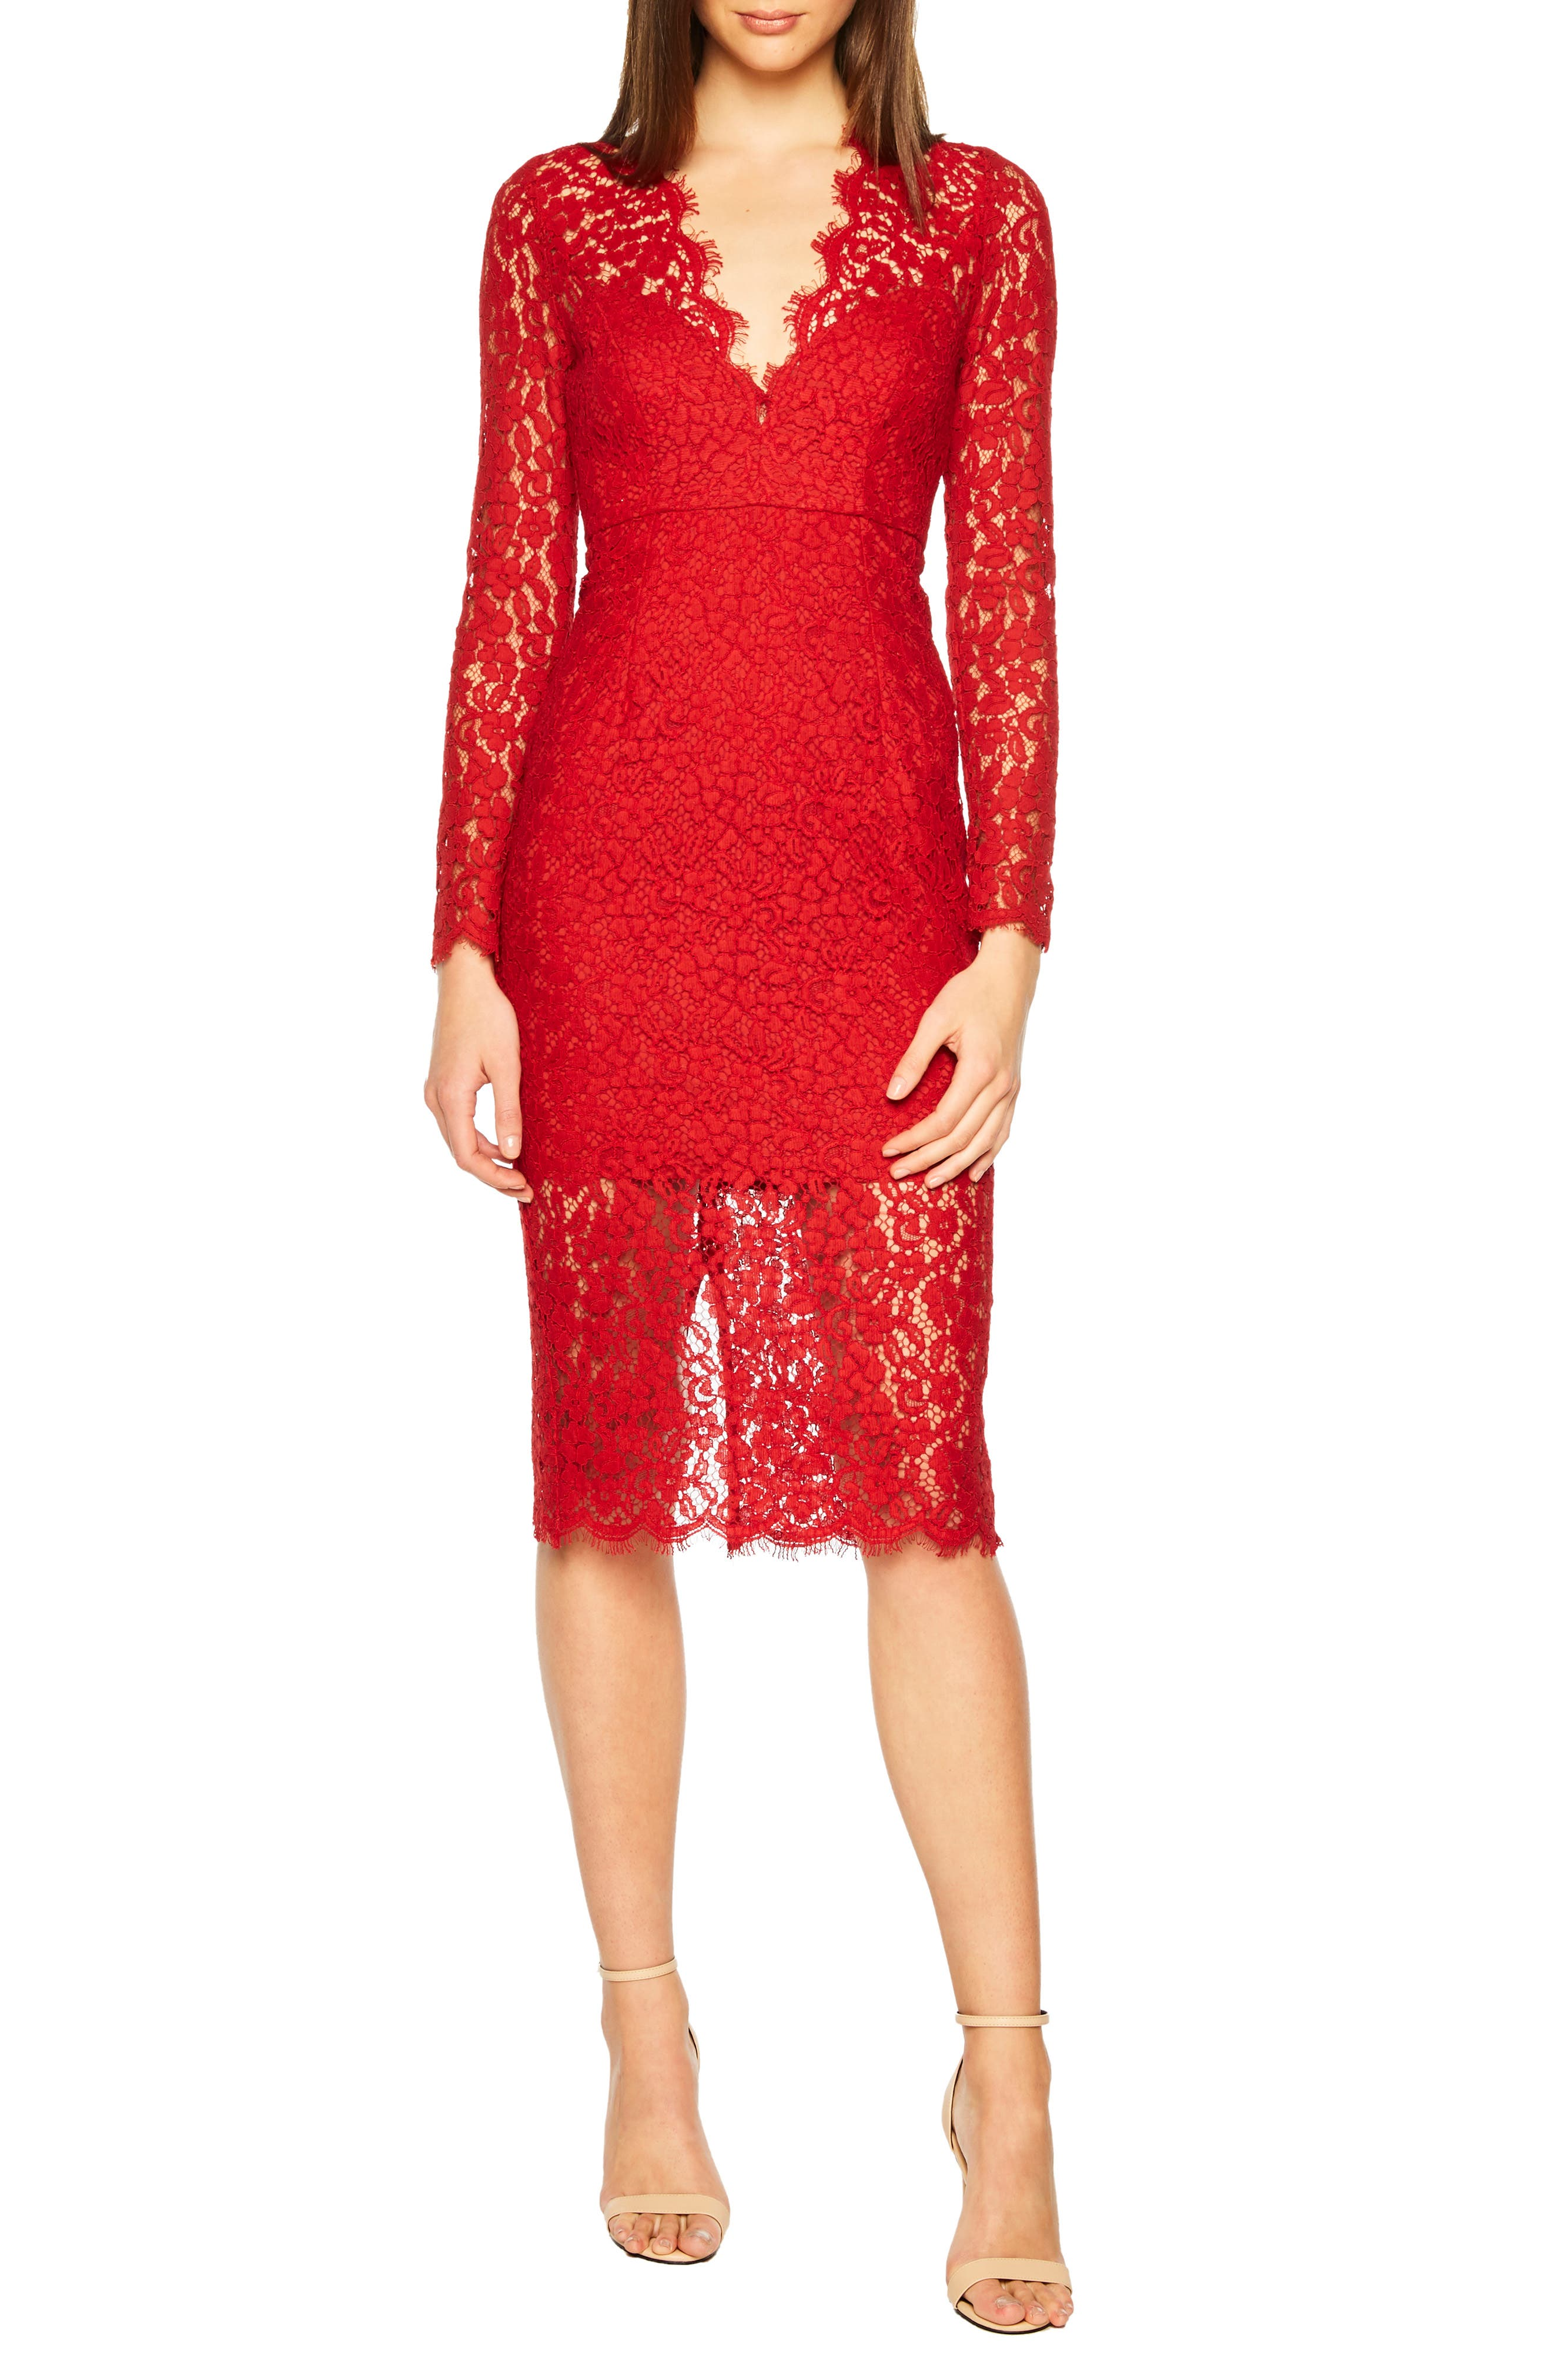 Lace Red Dresses